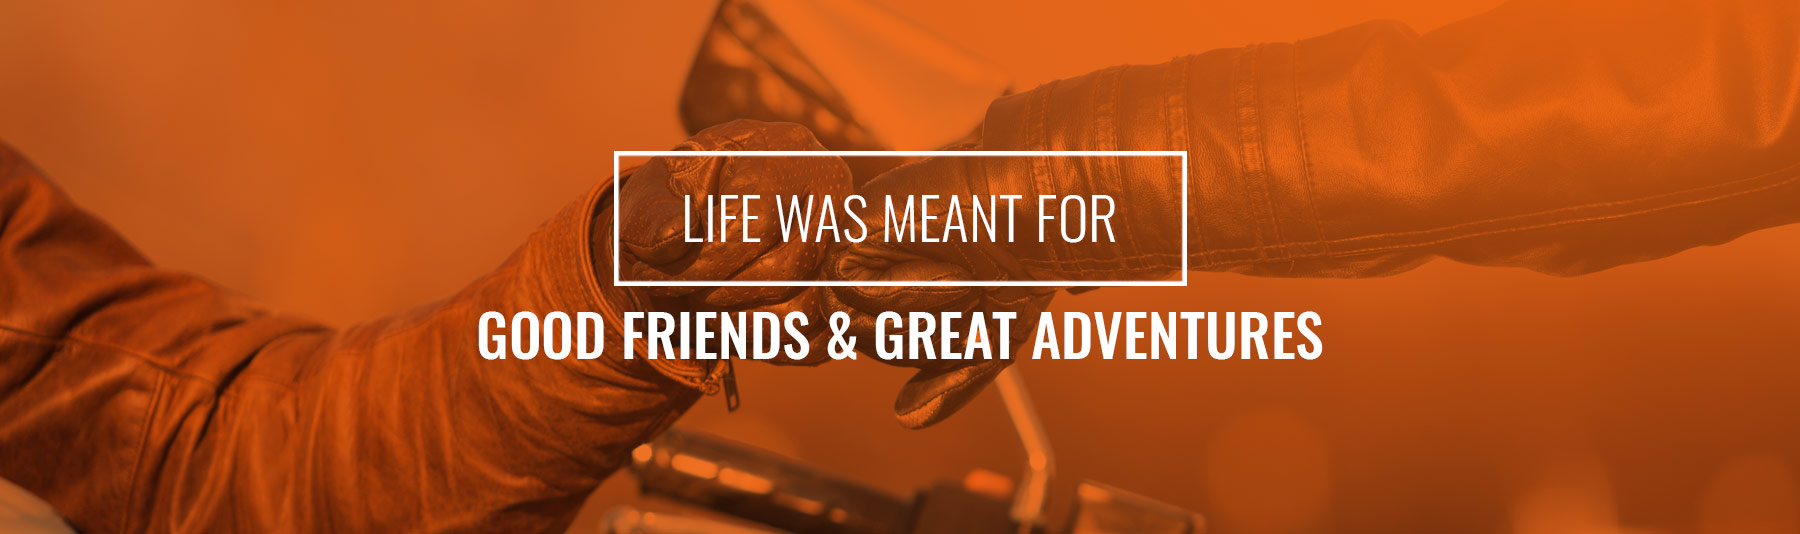 Twisted-Trails-Luggage-Life-Was-Meant-For-Good-Friends-And-Great-Adventures